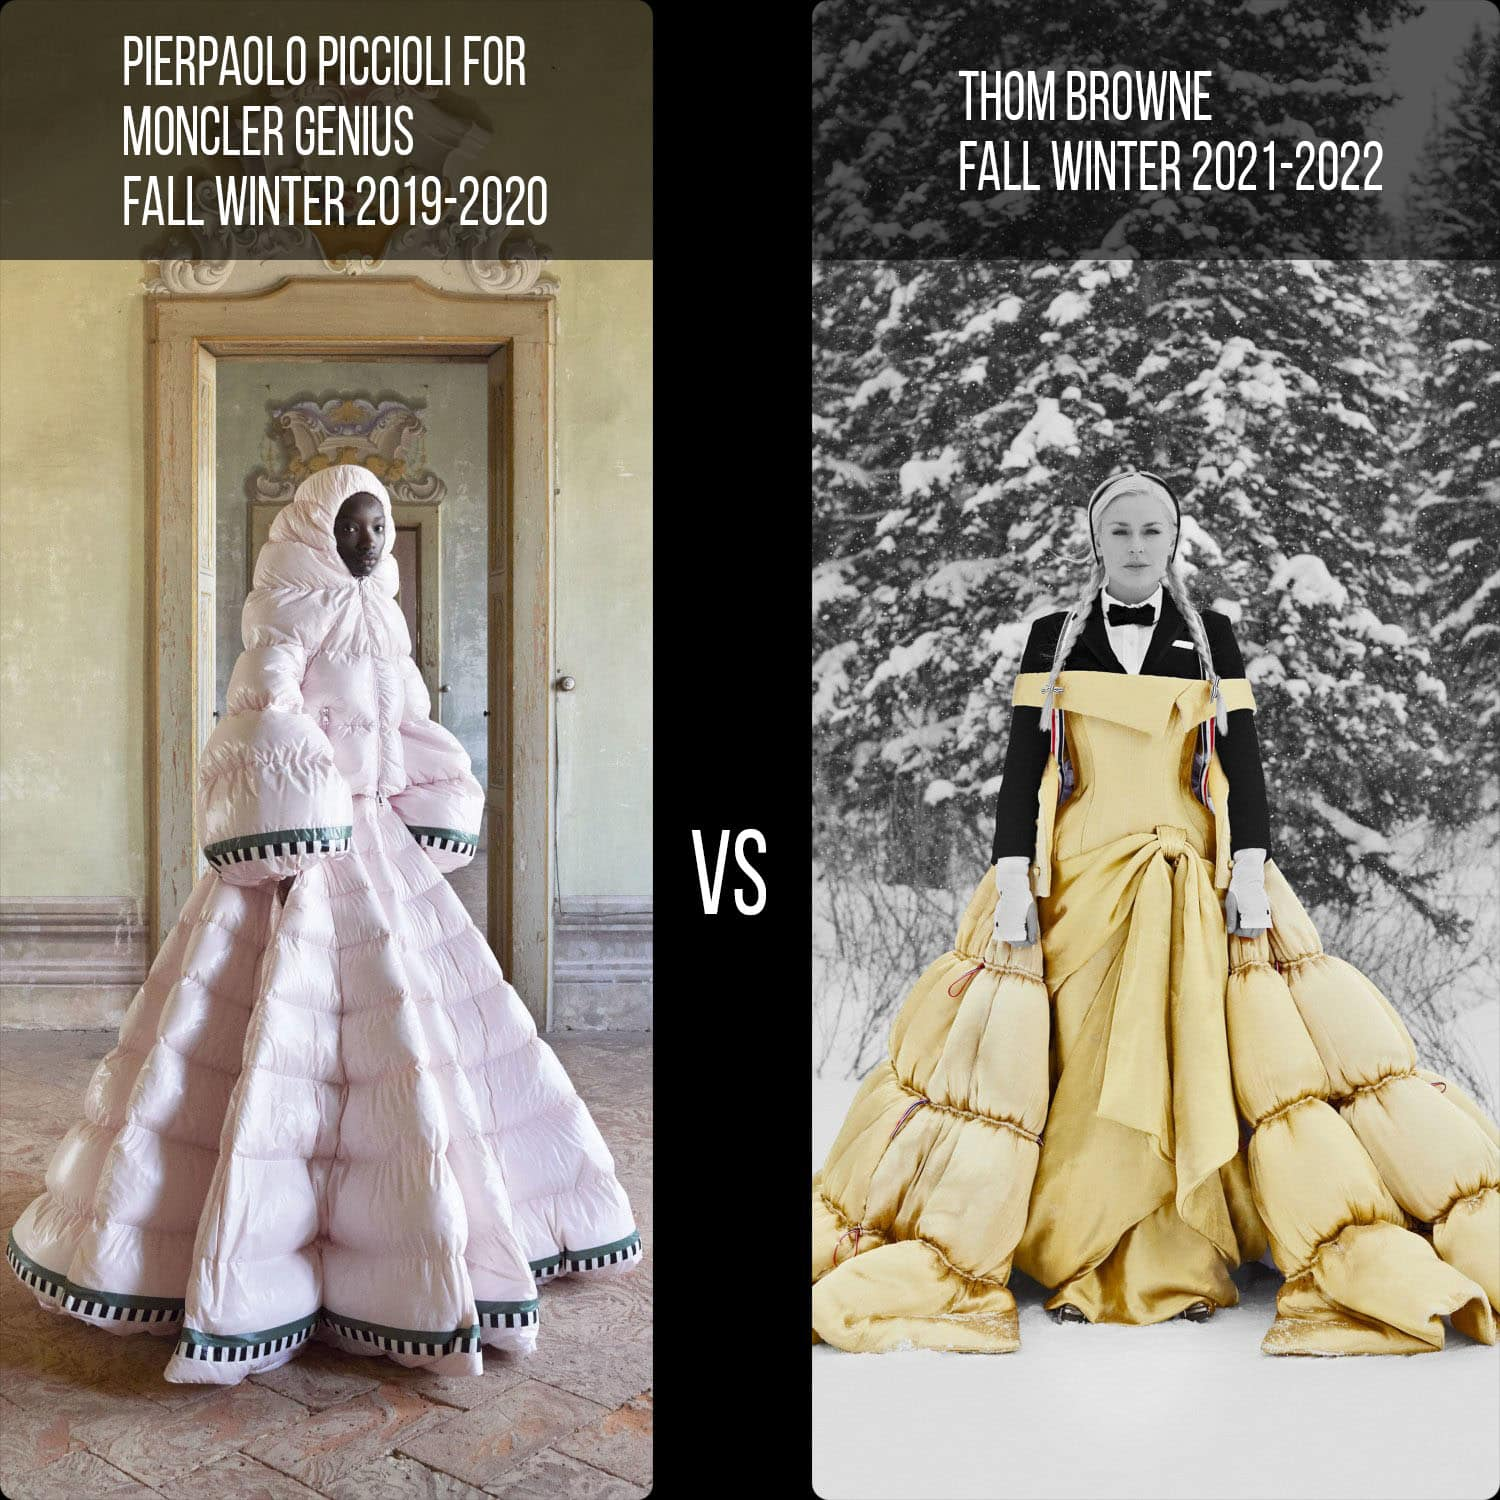 Moncler by Pierpaolo Piccioli Fall 2019-2020 vs Thome Browne Fall 2021-2022